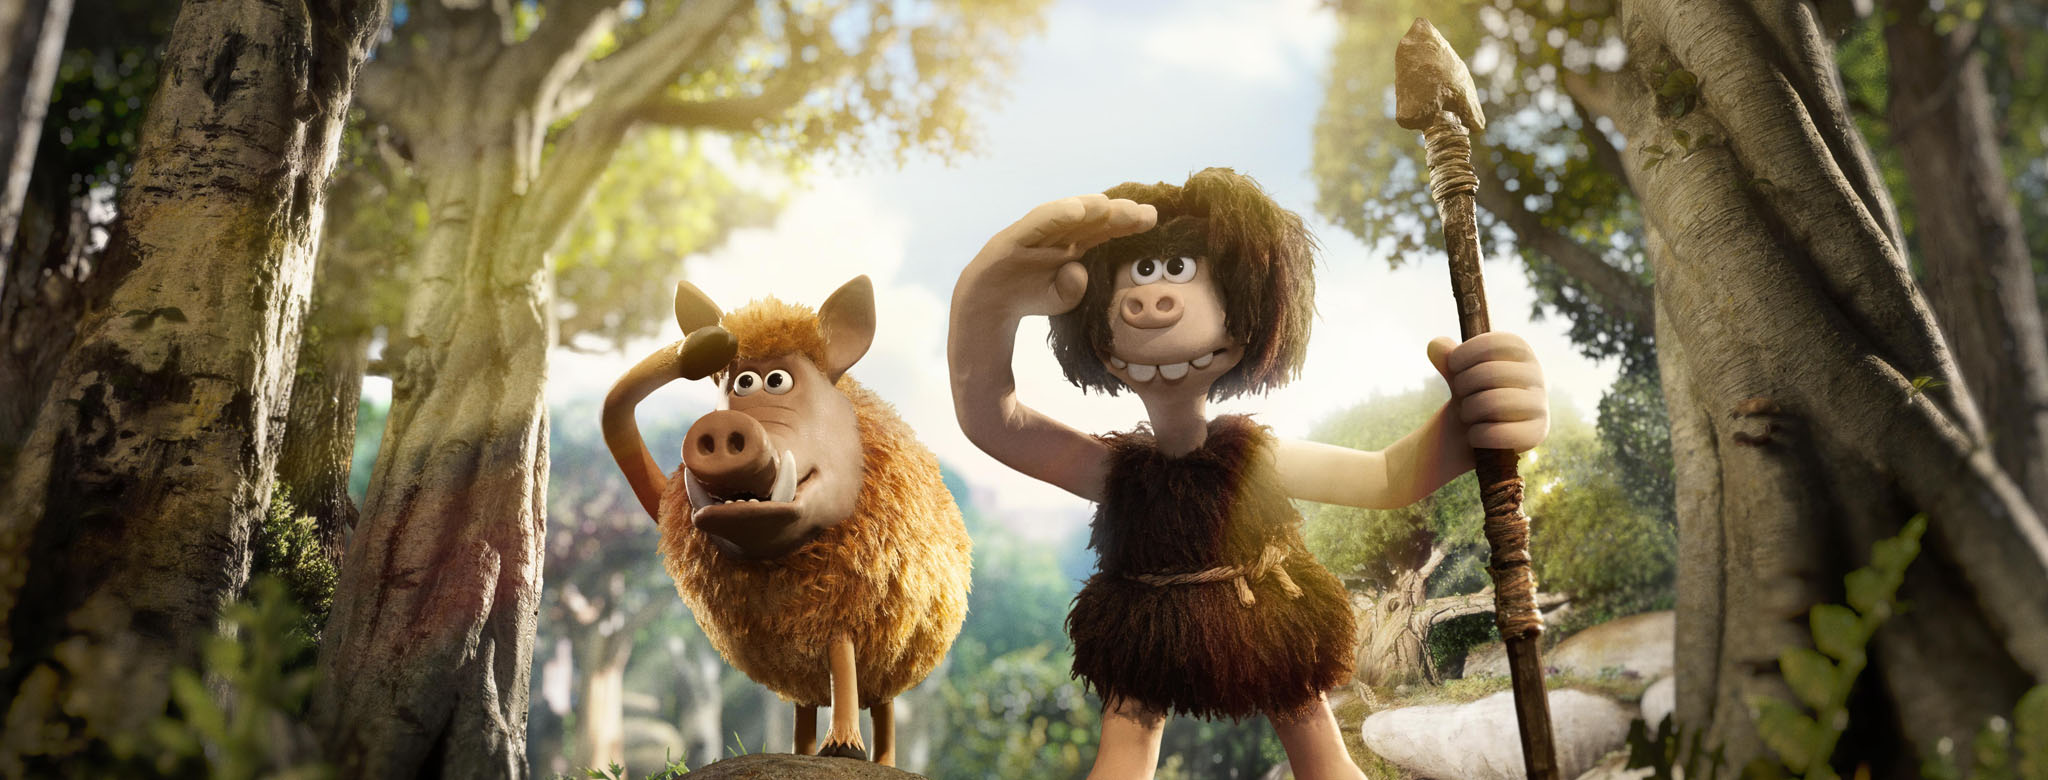 Early Man Review Still 1